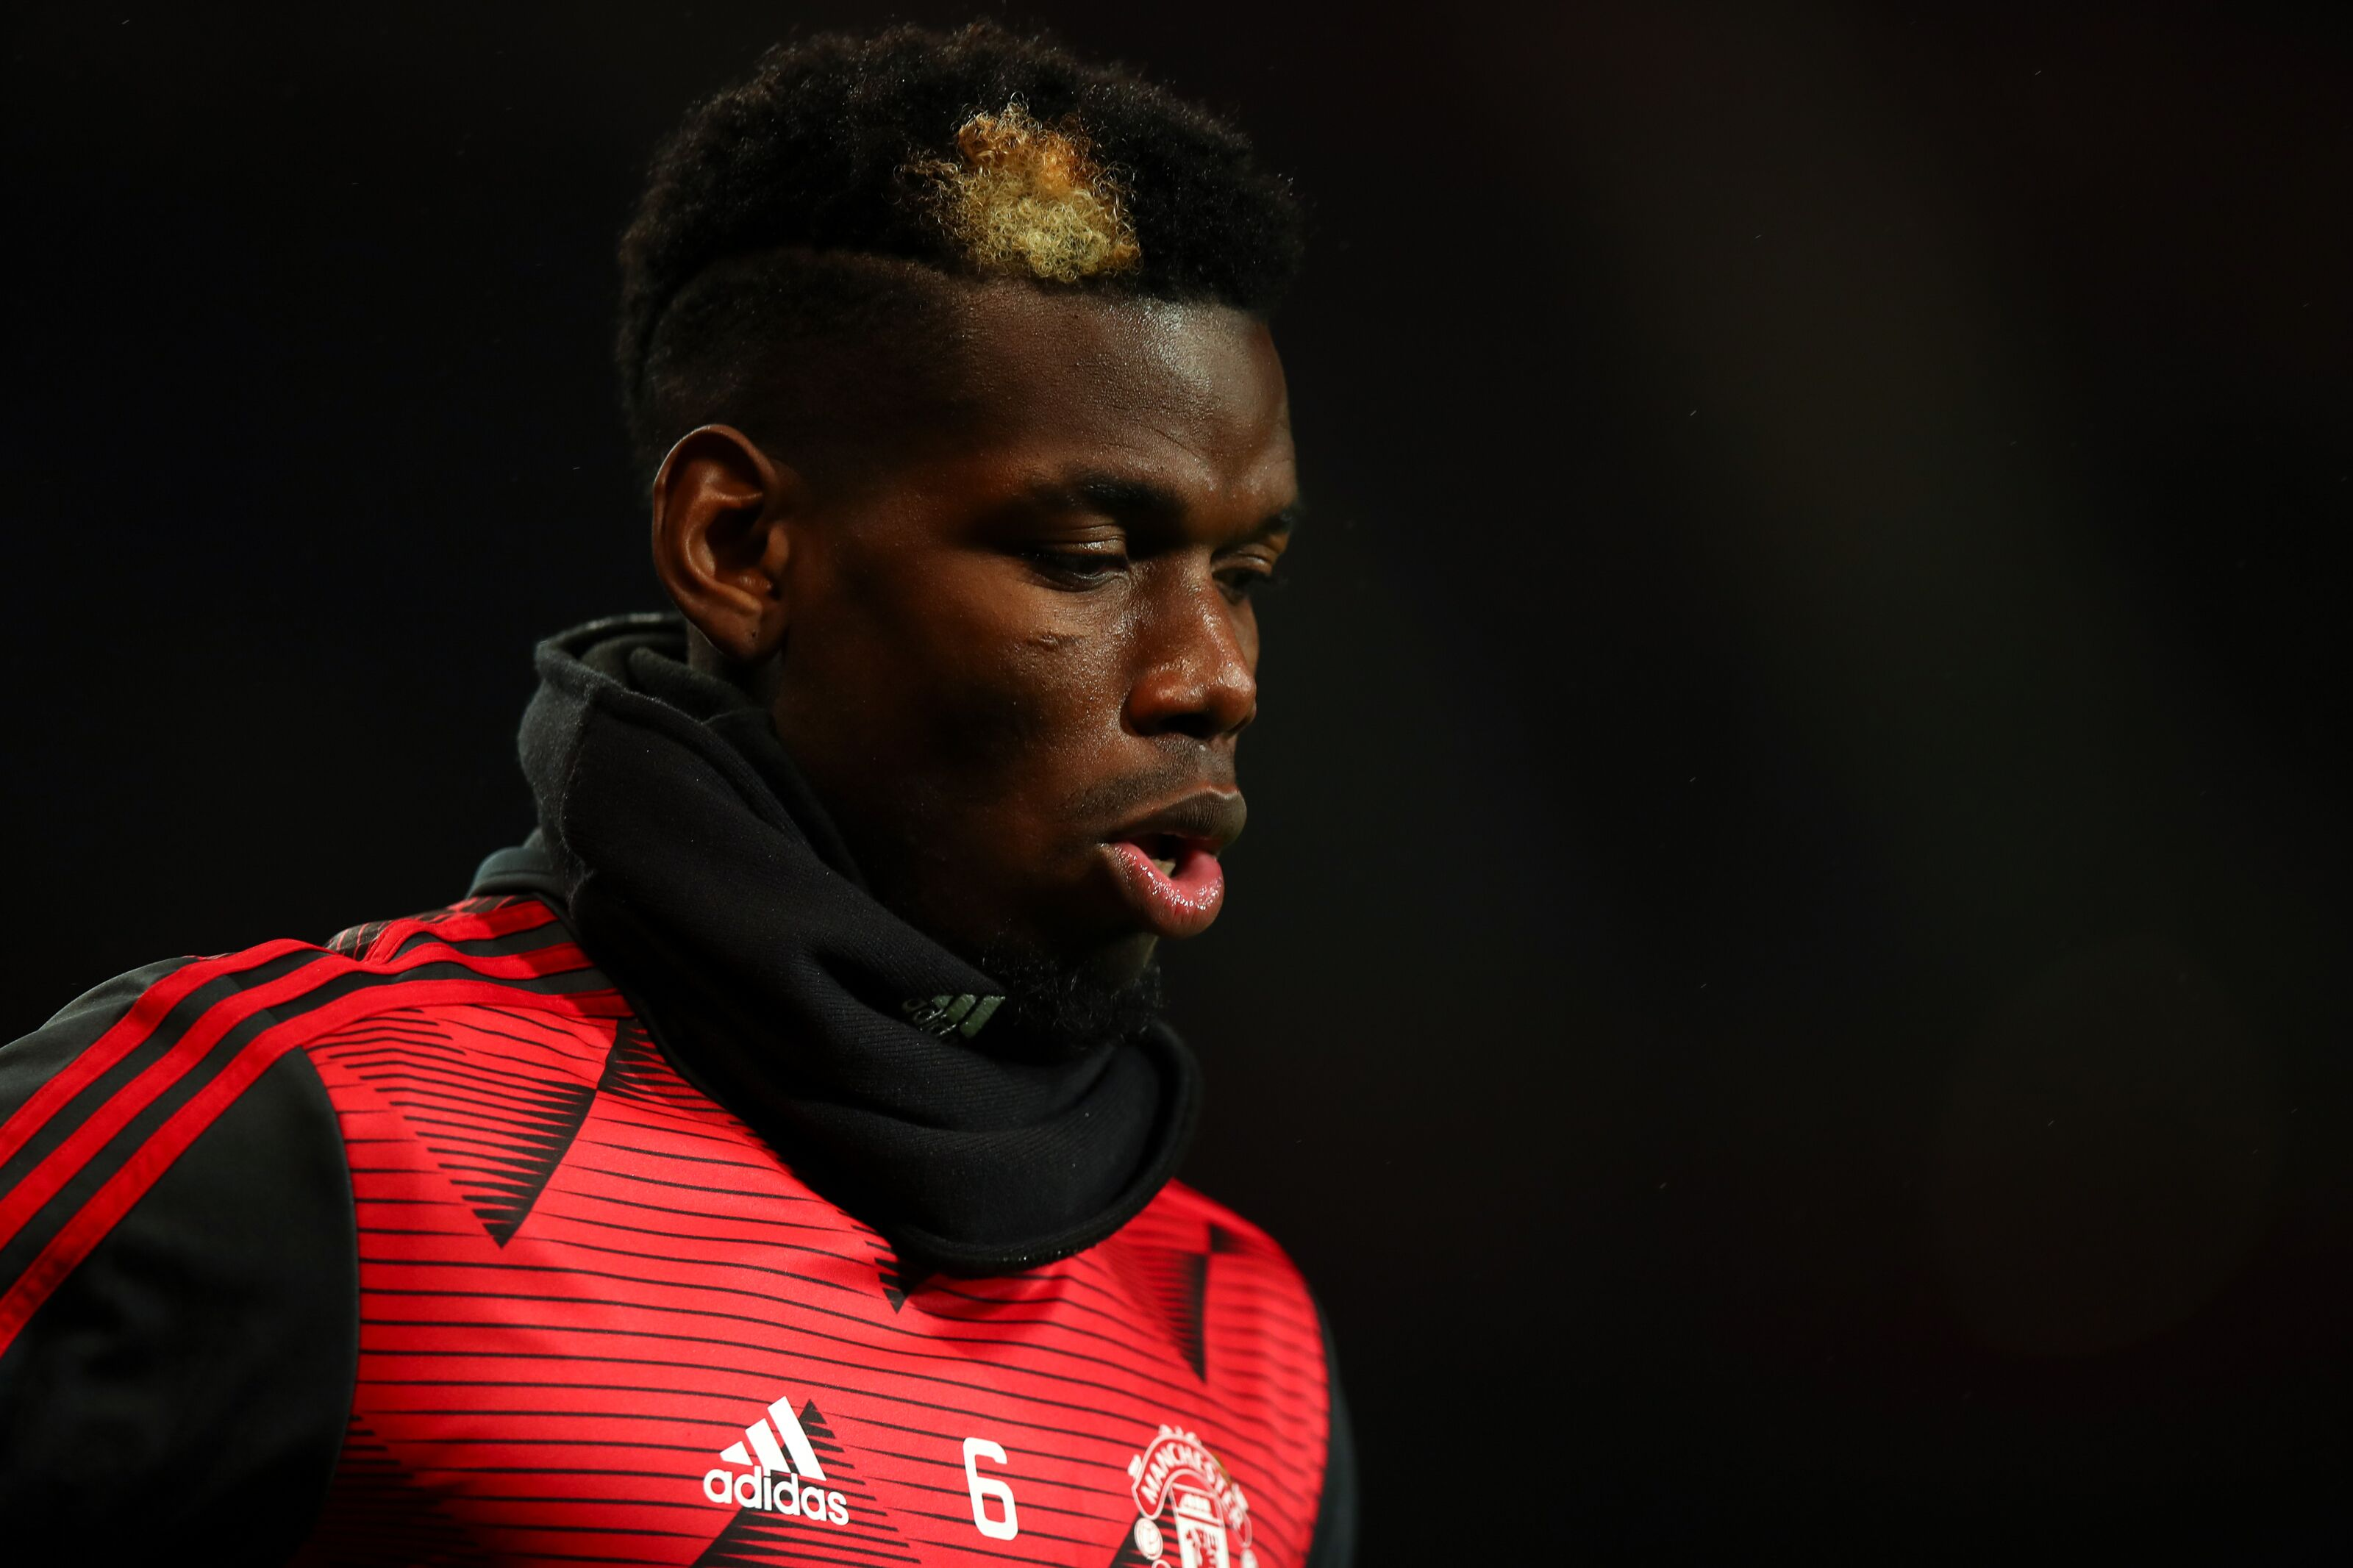 Manchester United: Paul Pogba's exit confirmed in shock statement